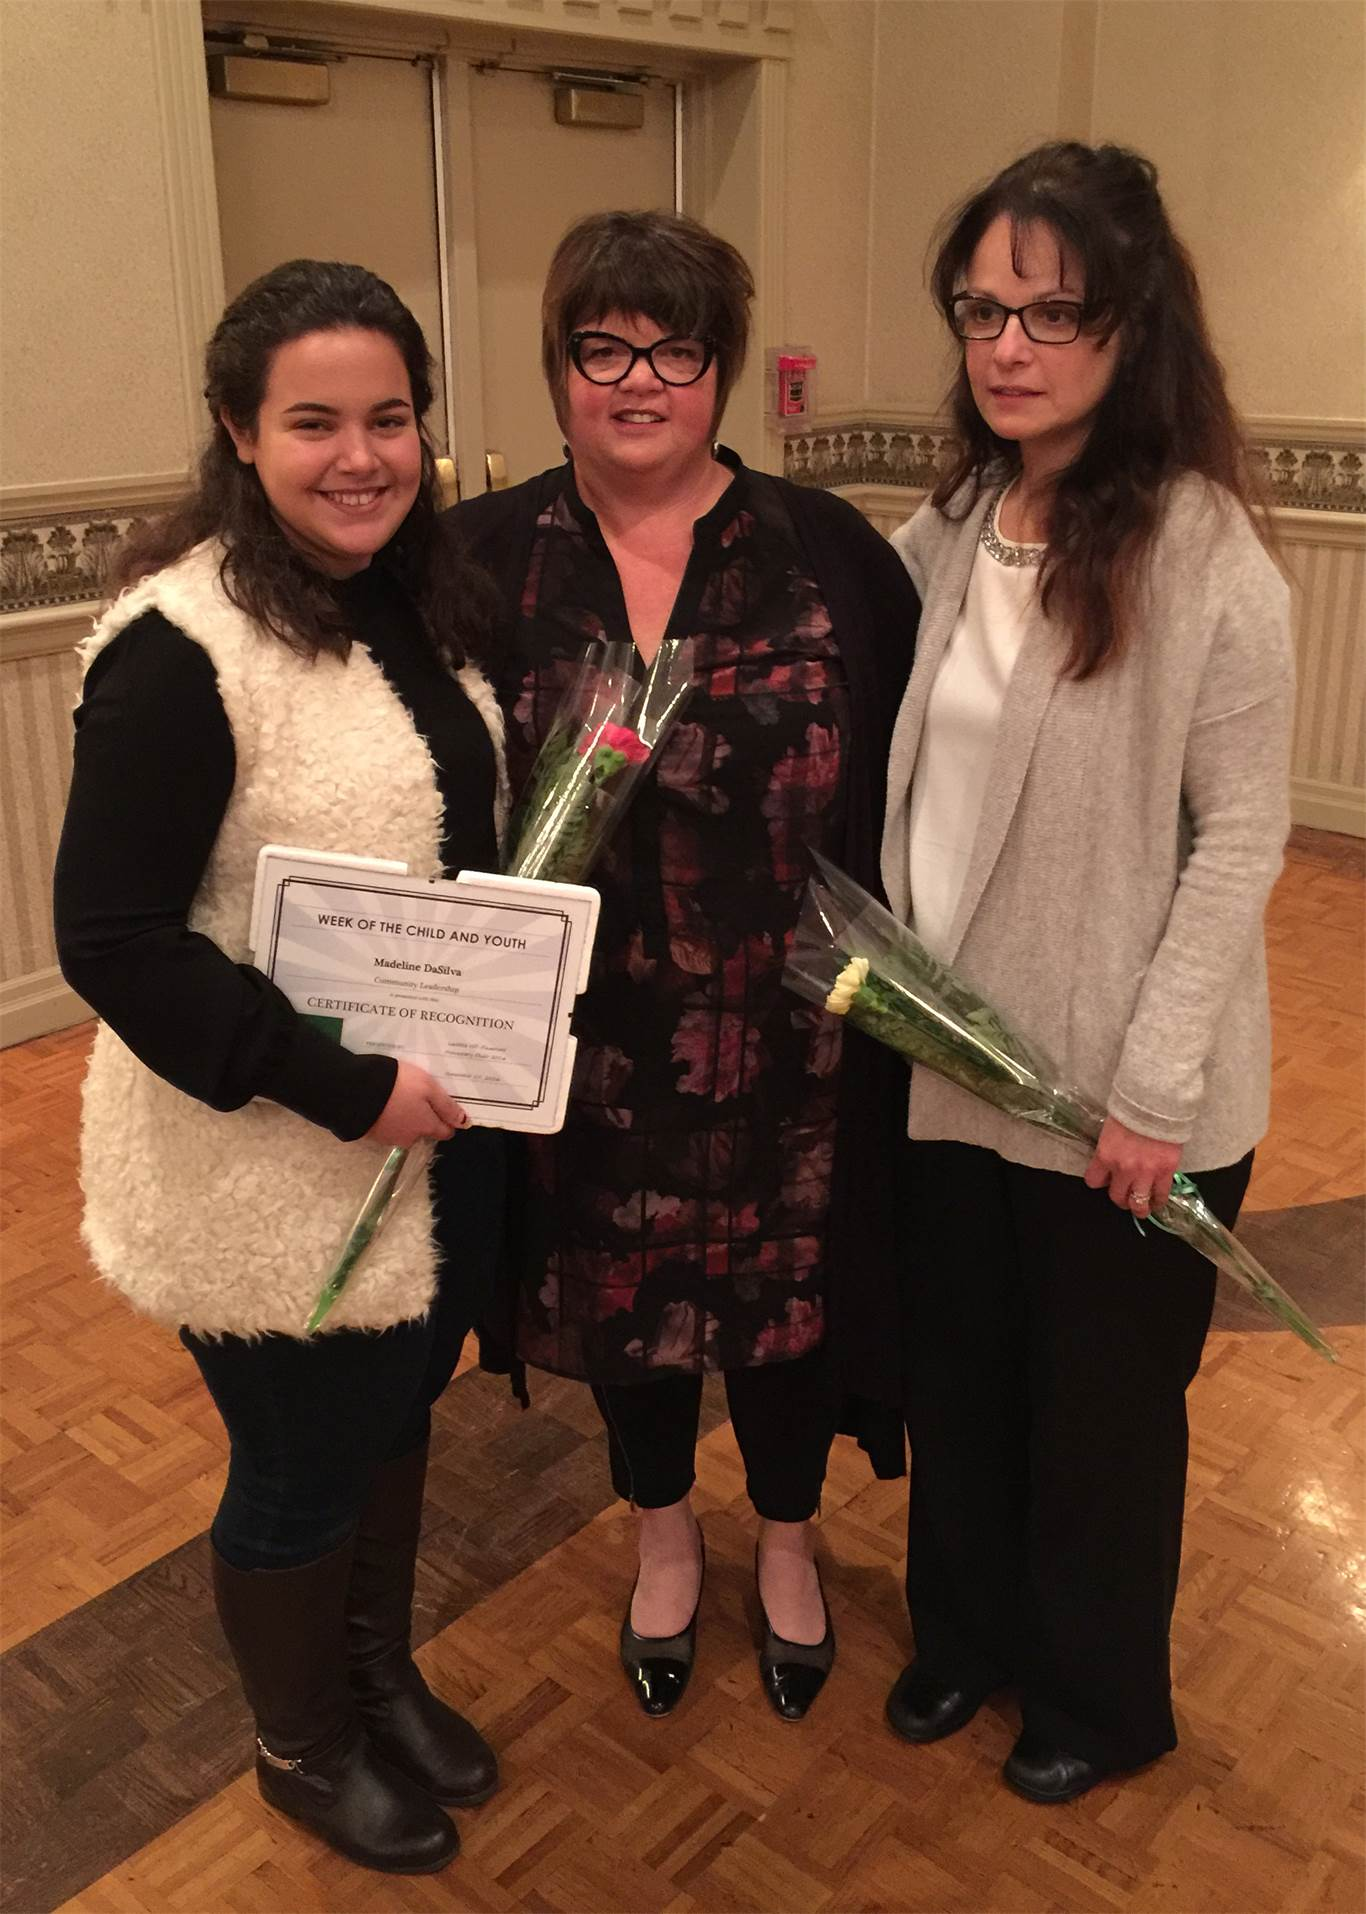 47f7f4e8c4 Two individuals from the Hamilton-Wentworth Catholic District School Board  were recognized by the Week